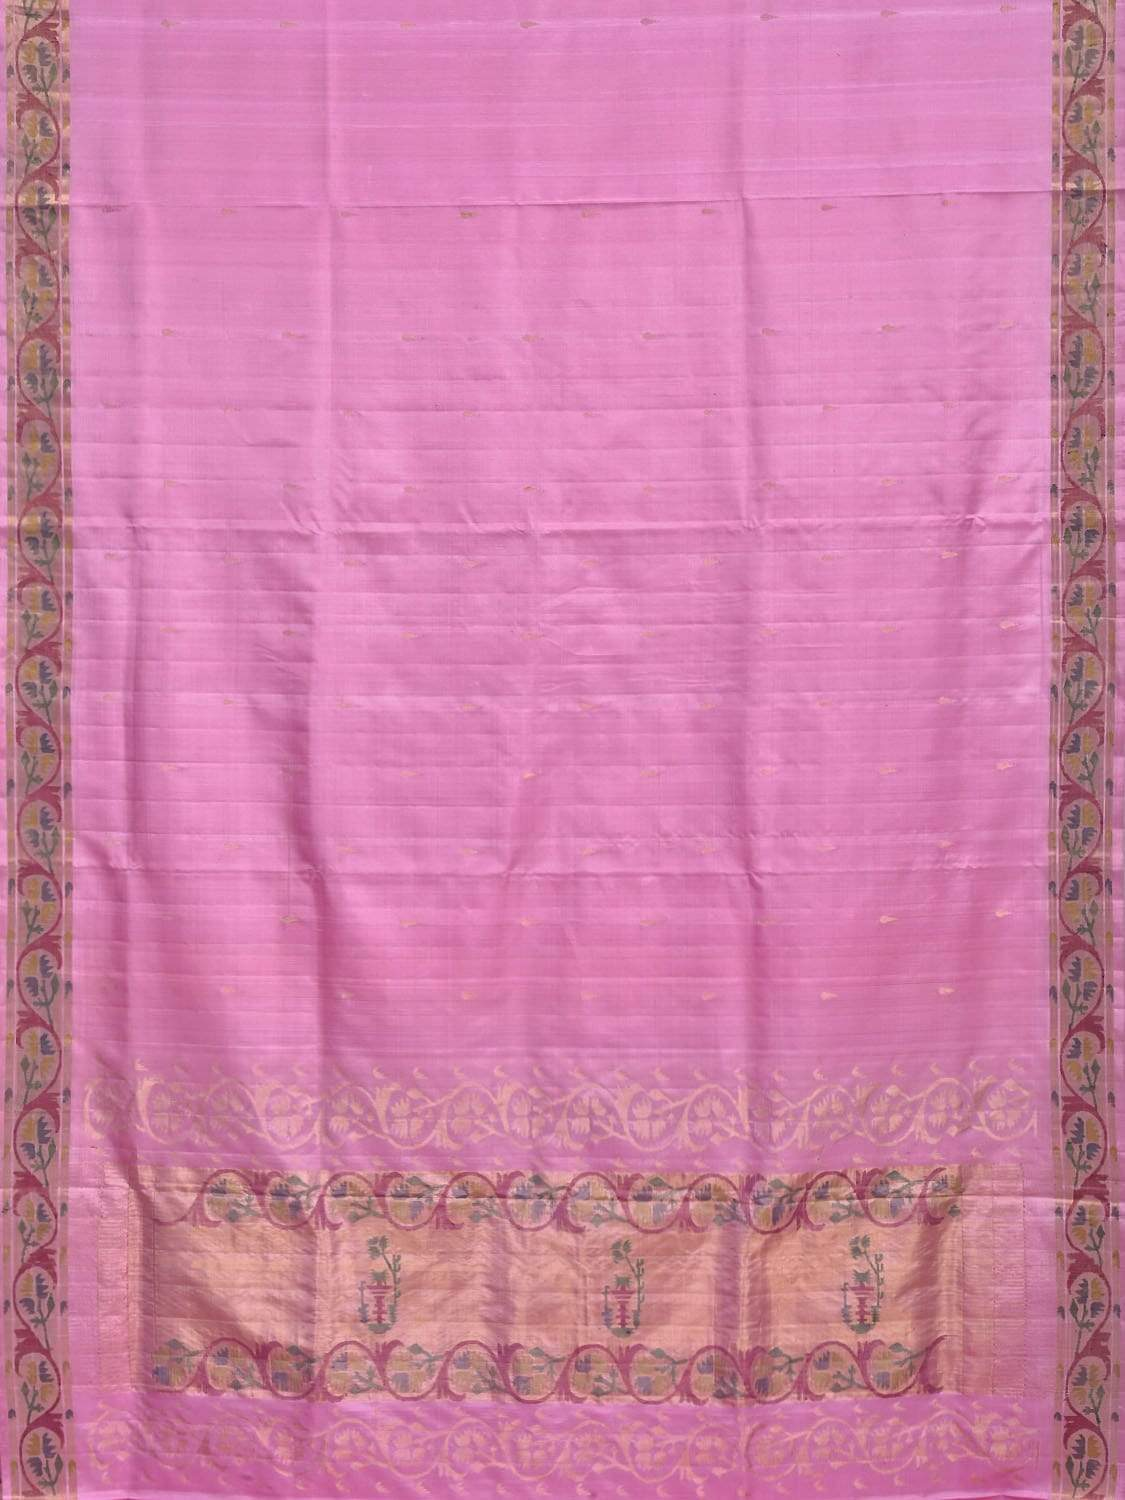 Baby Pink Uppada Silk Handloom Saree with Aakruti Border and Pallu Design u1551